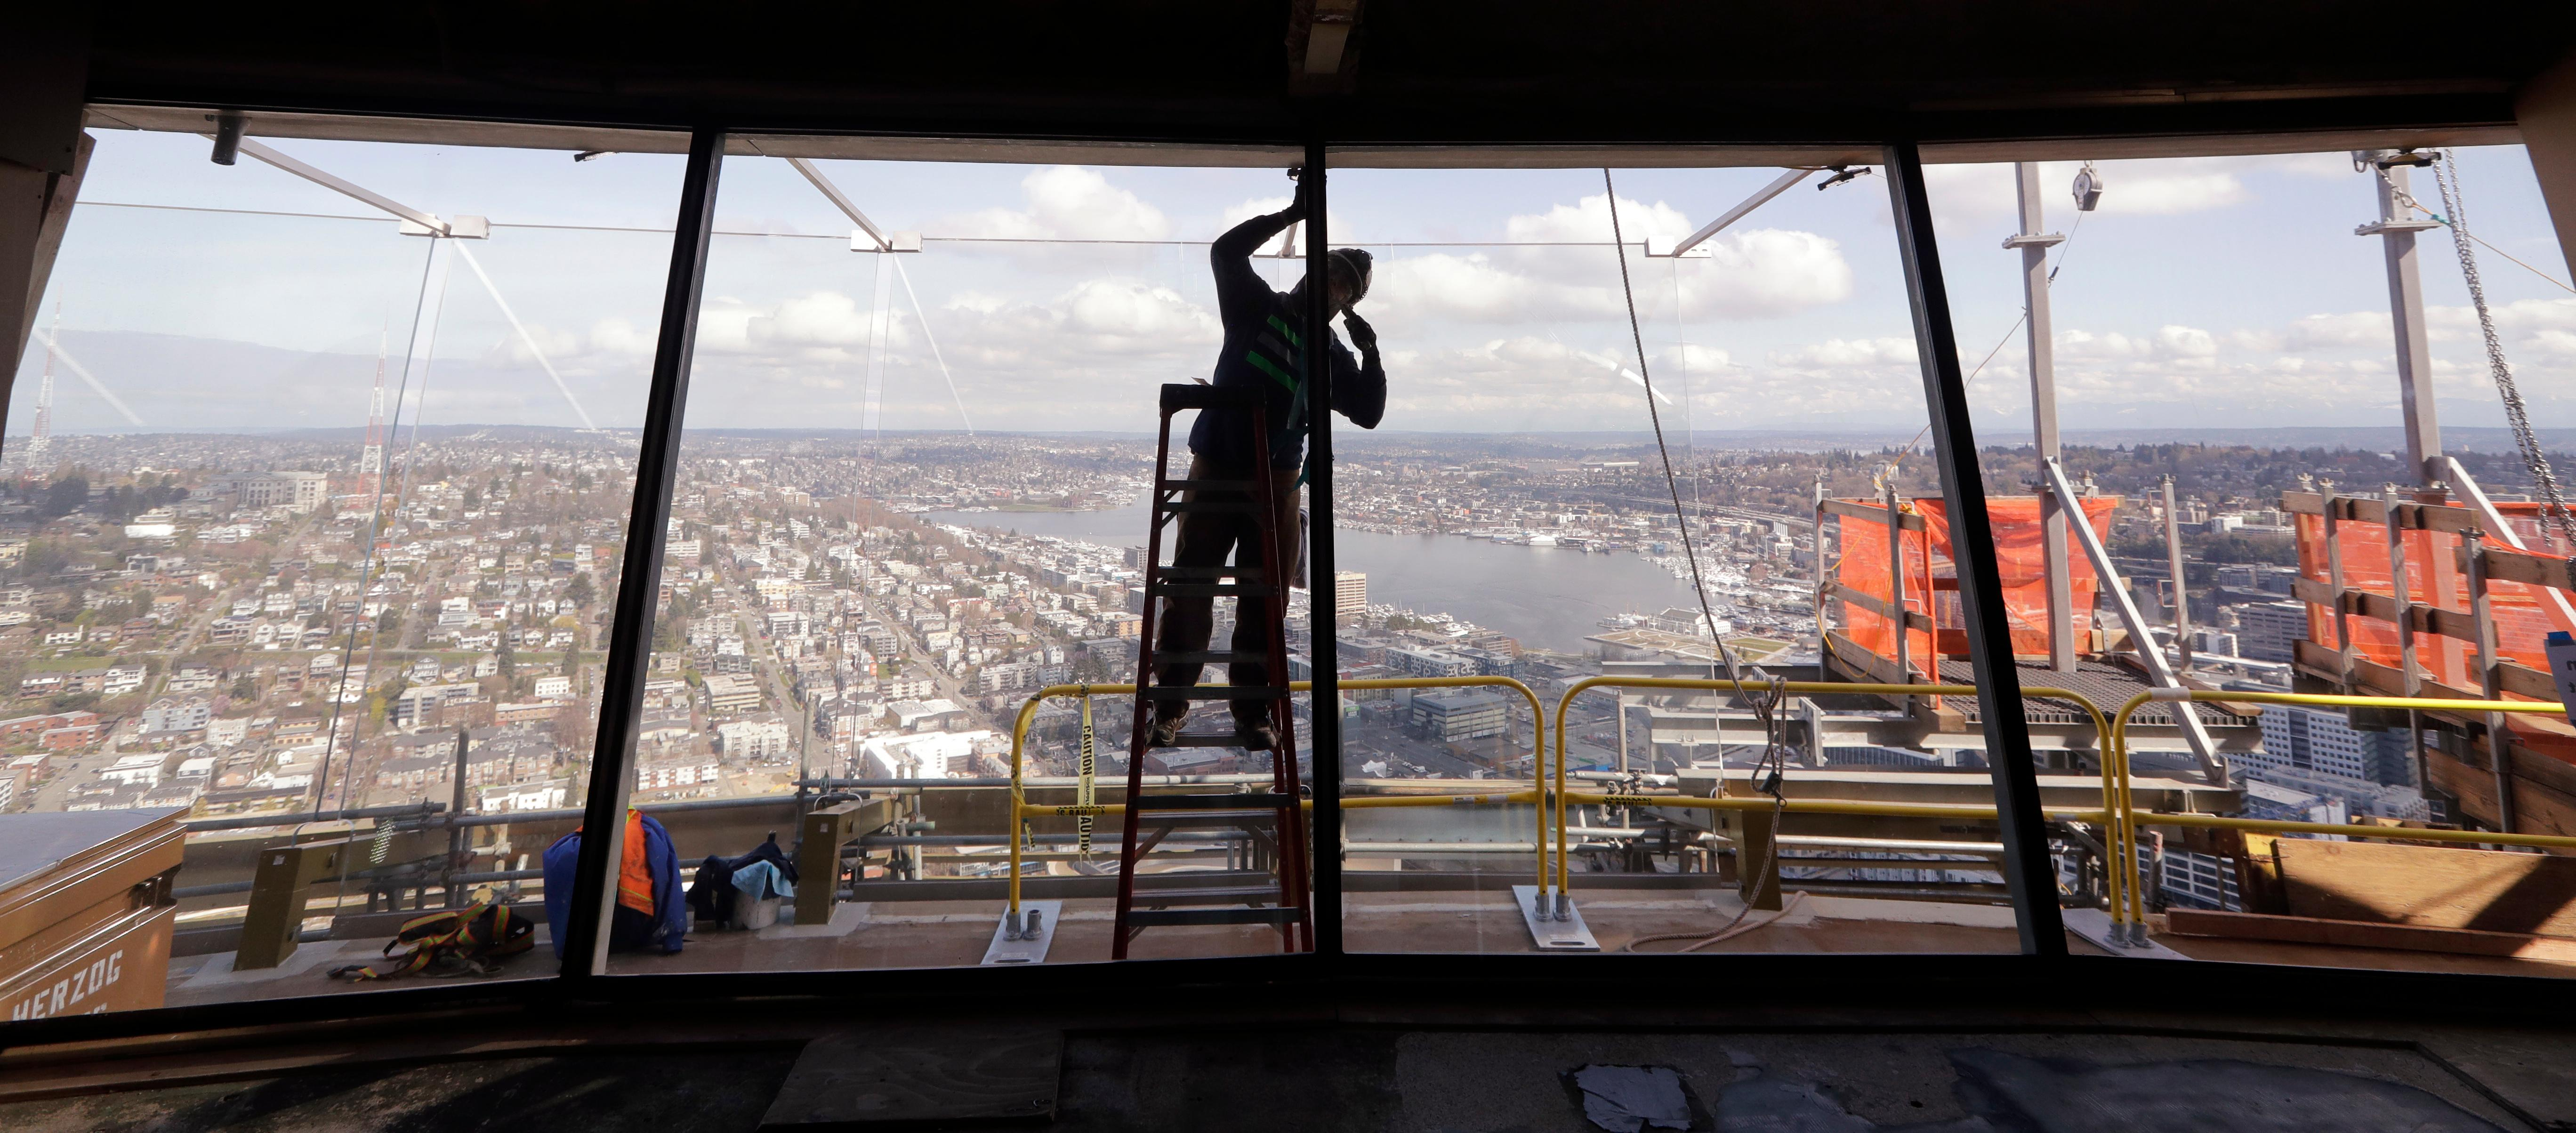 FILE - In this March 20, 2018, file photo, a glazer works on glass panels on the exterior wall of the Space Needle observation deck where larger glass panels behind him begin to line the exterior viewing platform and views north in Seattle. The privately-funded, $100 million renovation of the 55-year old structure is designed to increase the views 500-some feet above ground. It will include the replacement of wire barriers on the observation deck with outward-slanted glass and short exterior walls will be replaced with the floor-to-ceiling glass panels. (AP Photo/Elaine Thompson)